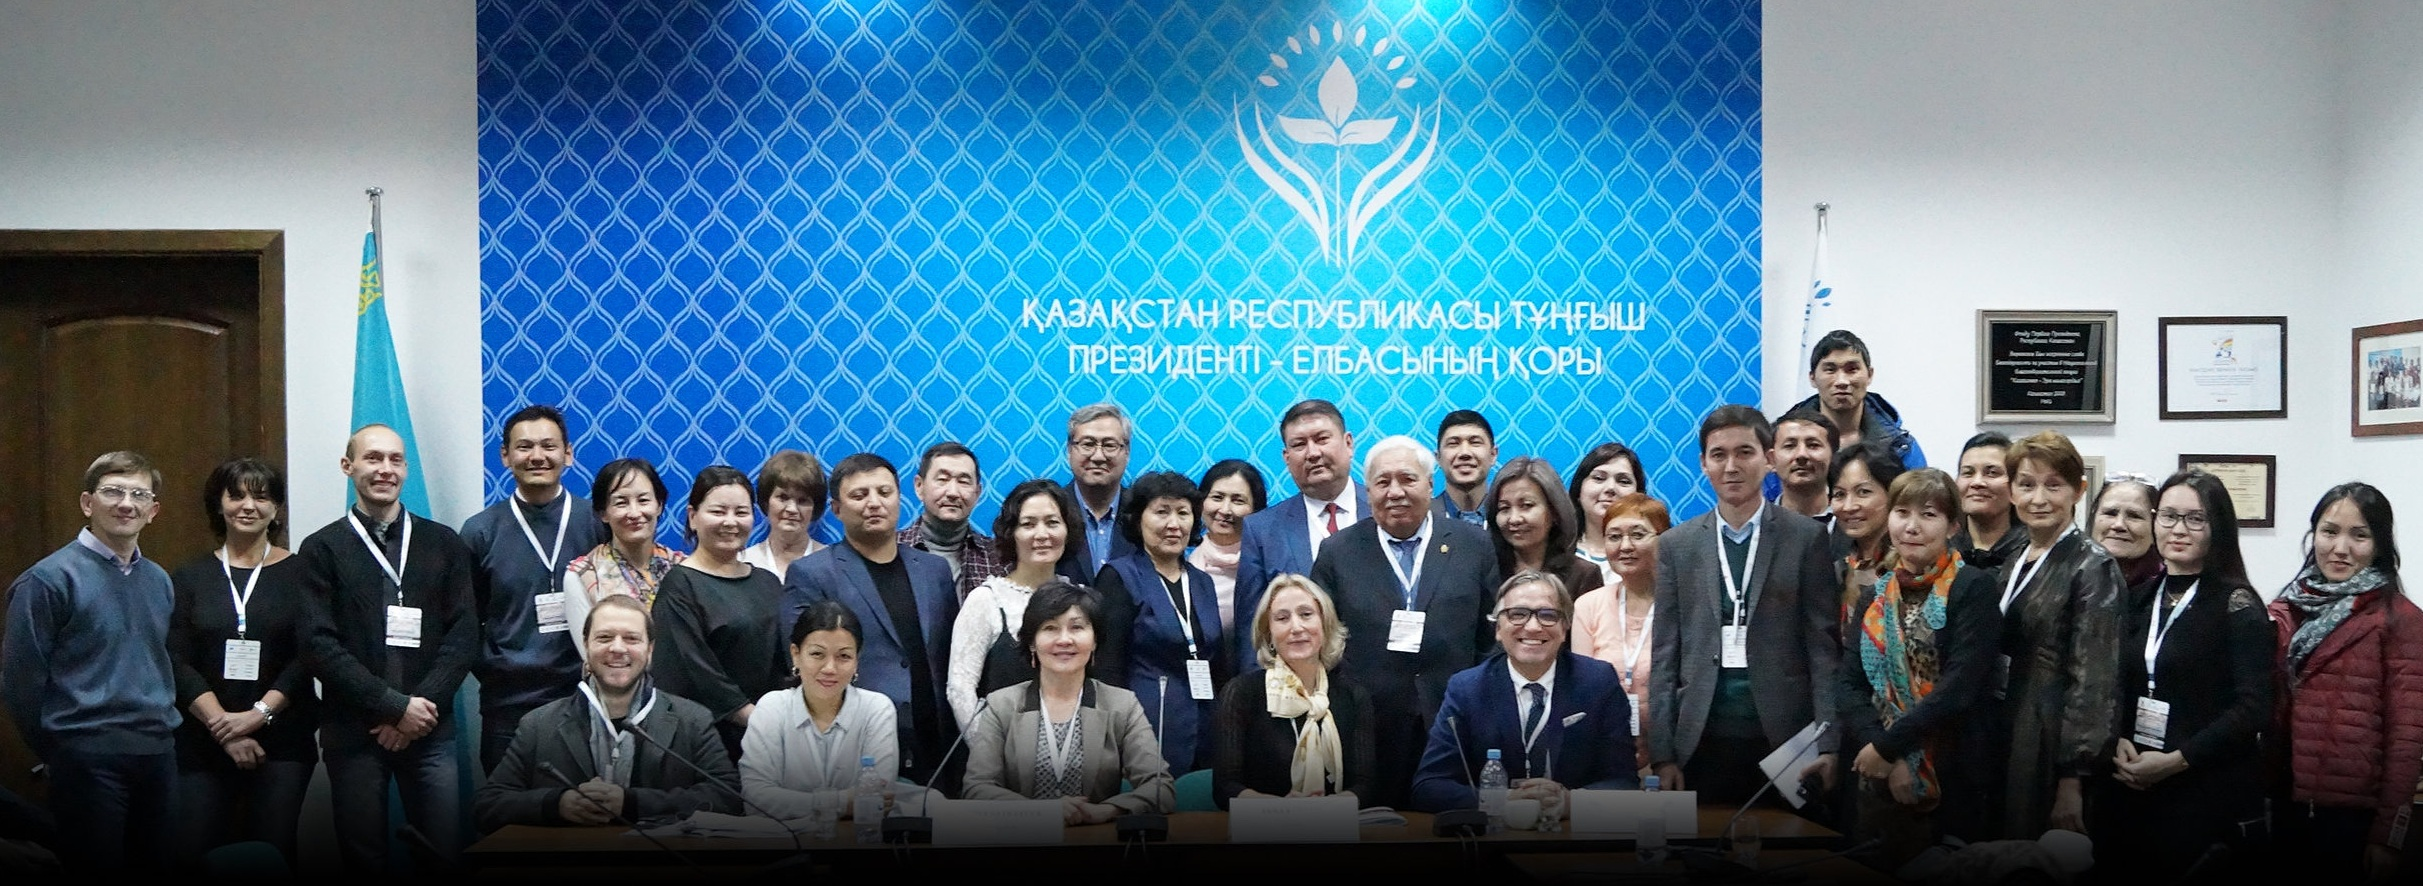 Launch of the gynecological pathology training program in Almaty, Kazakhstan, 2018